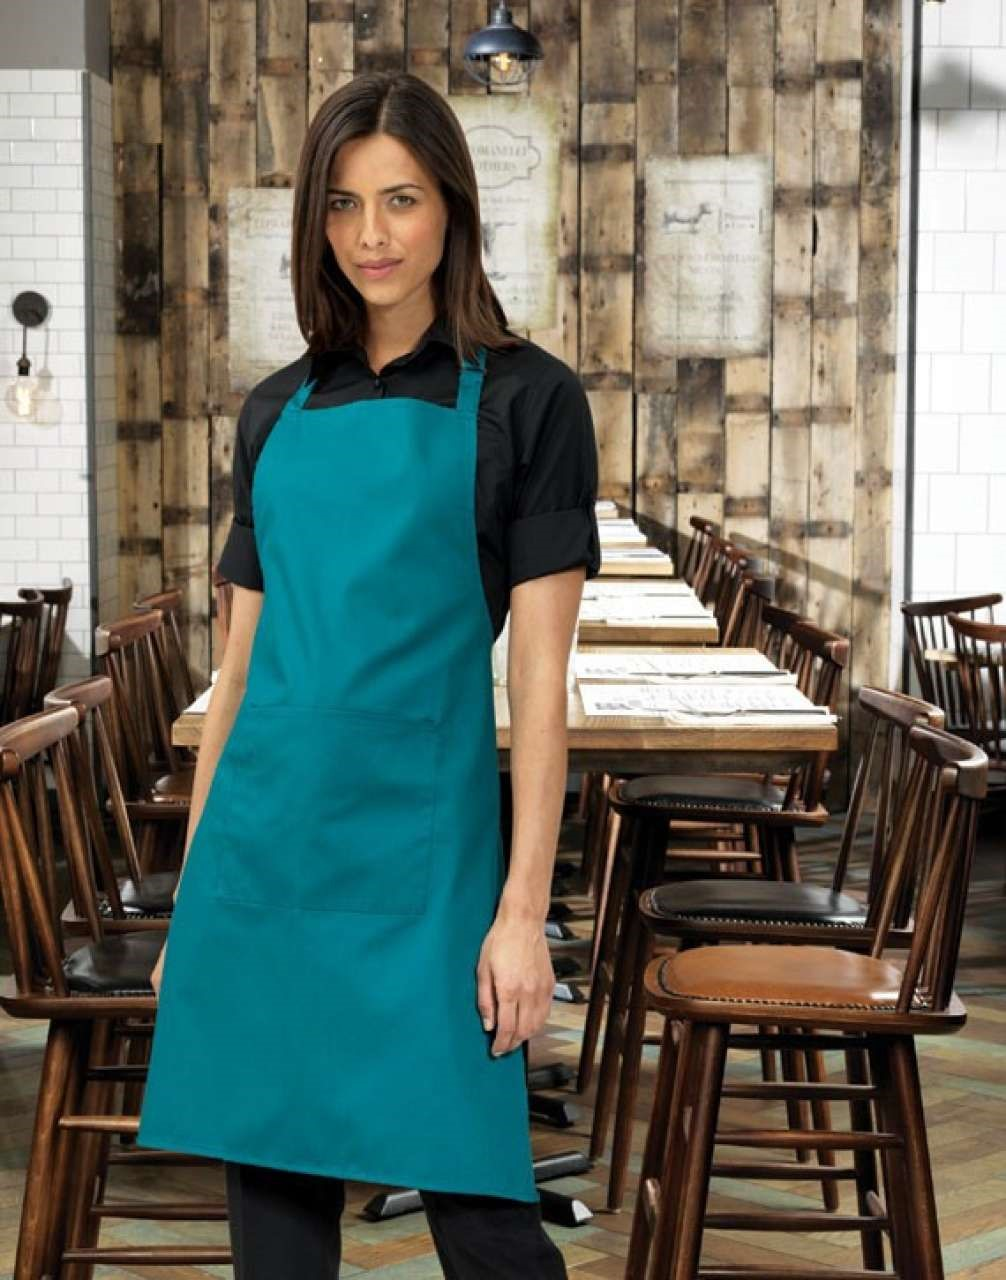 'COLOURS' BIB APRON WITH POCKET